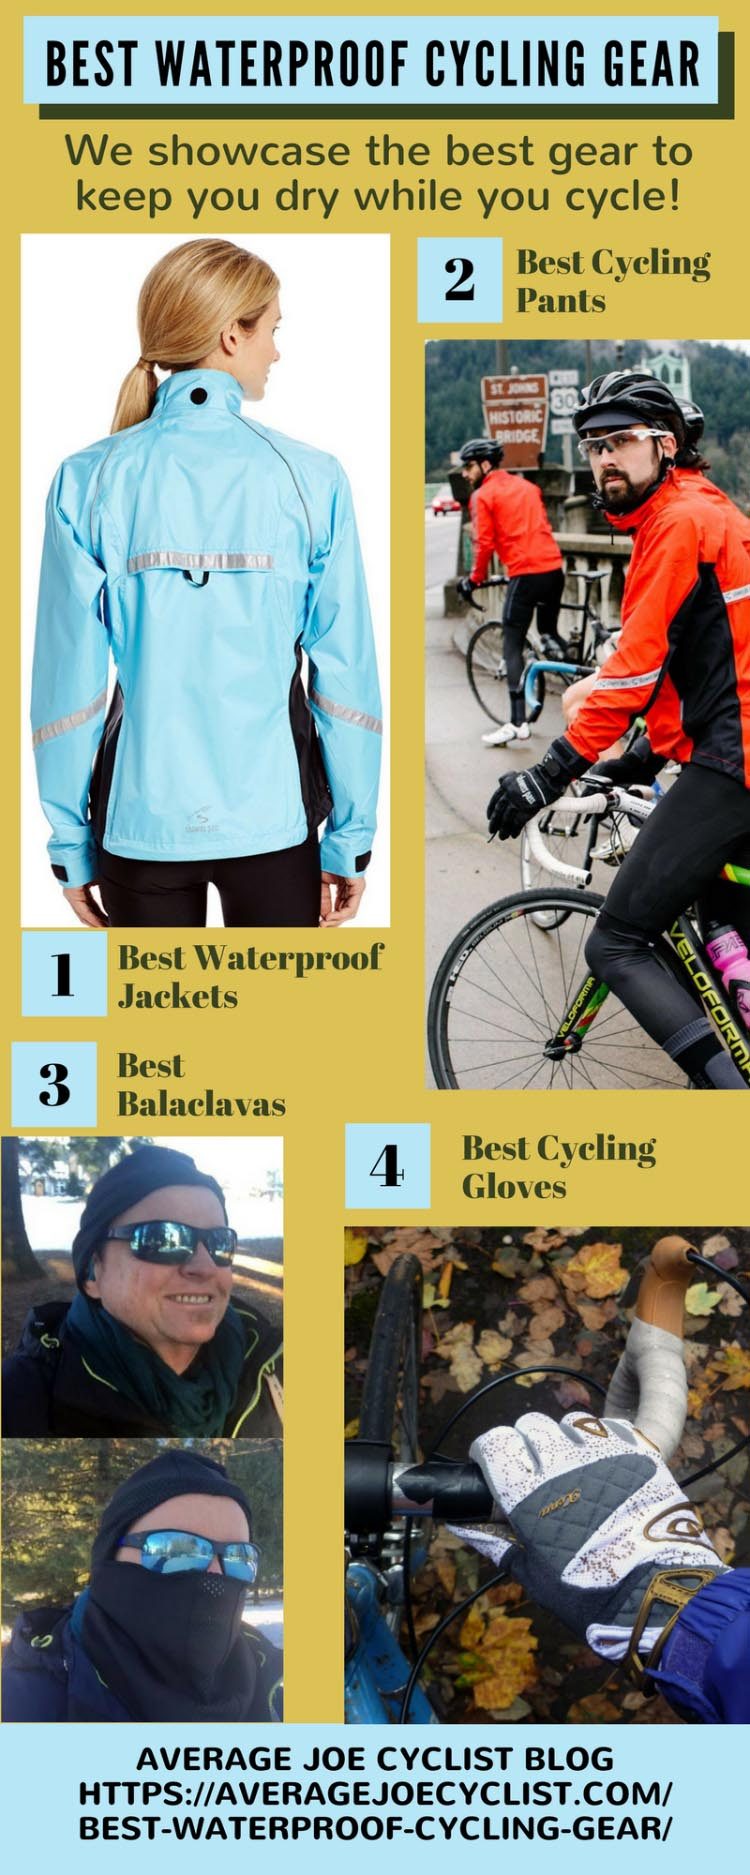 Best Waterproof cycling gear